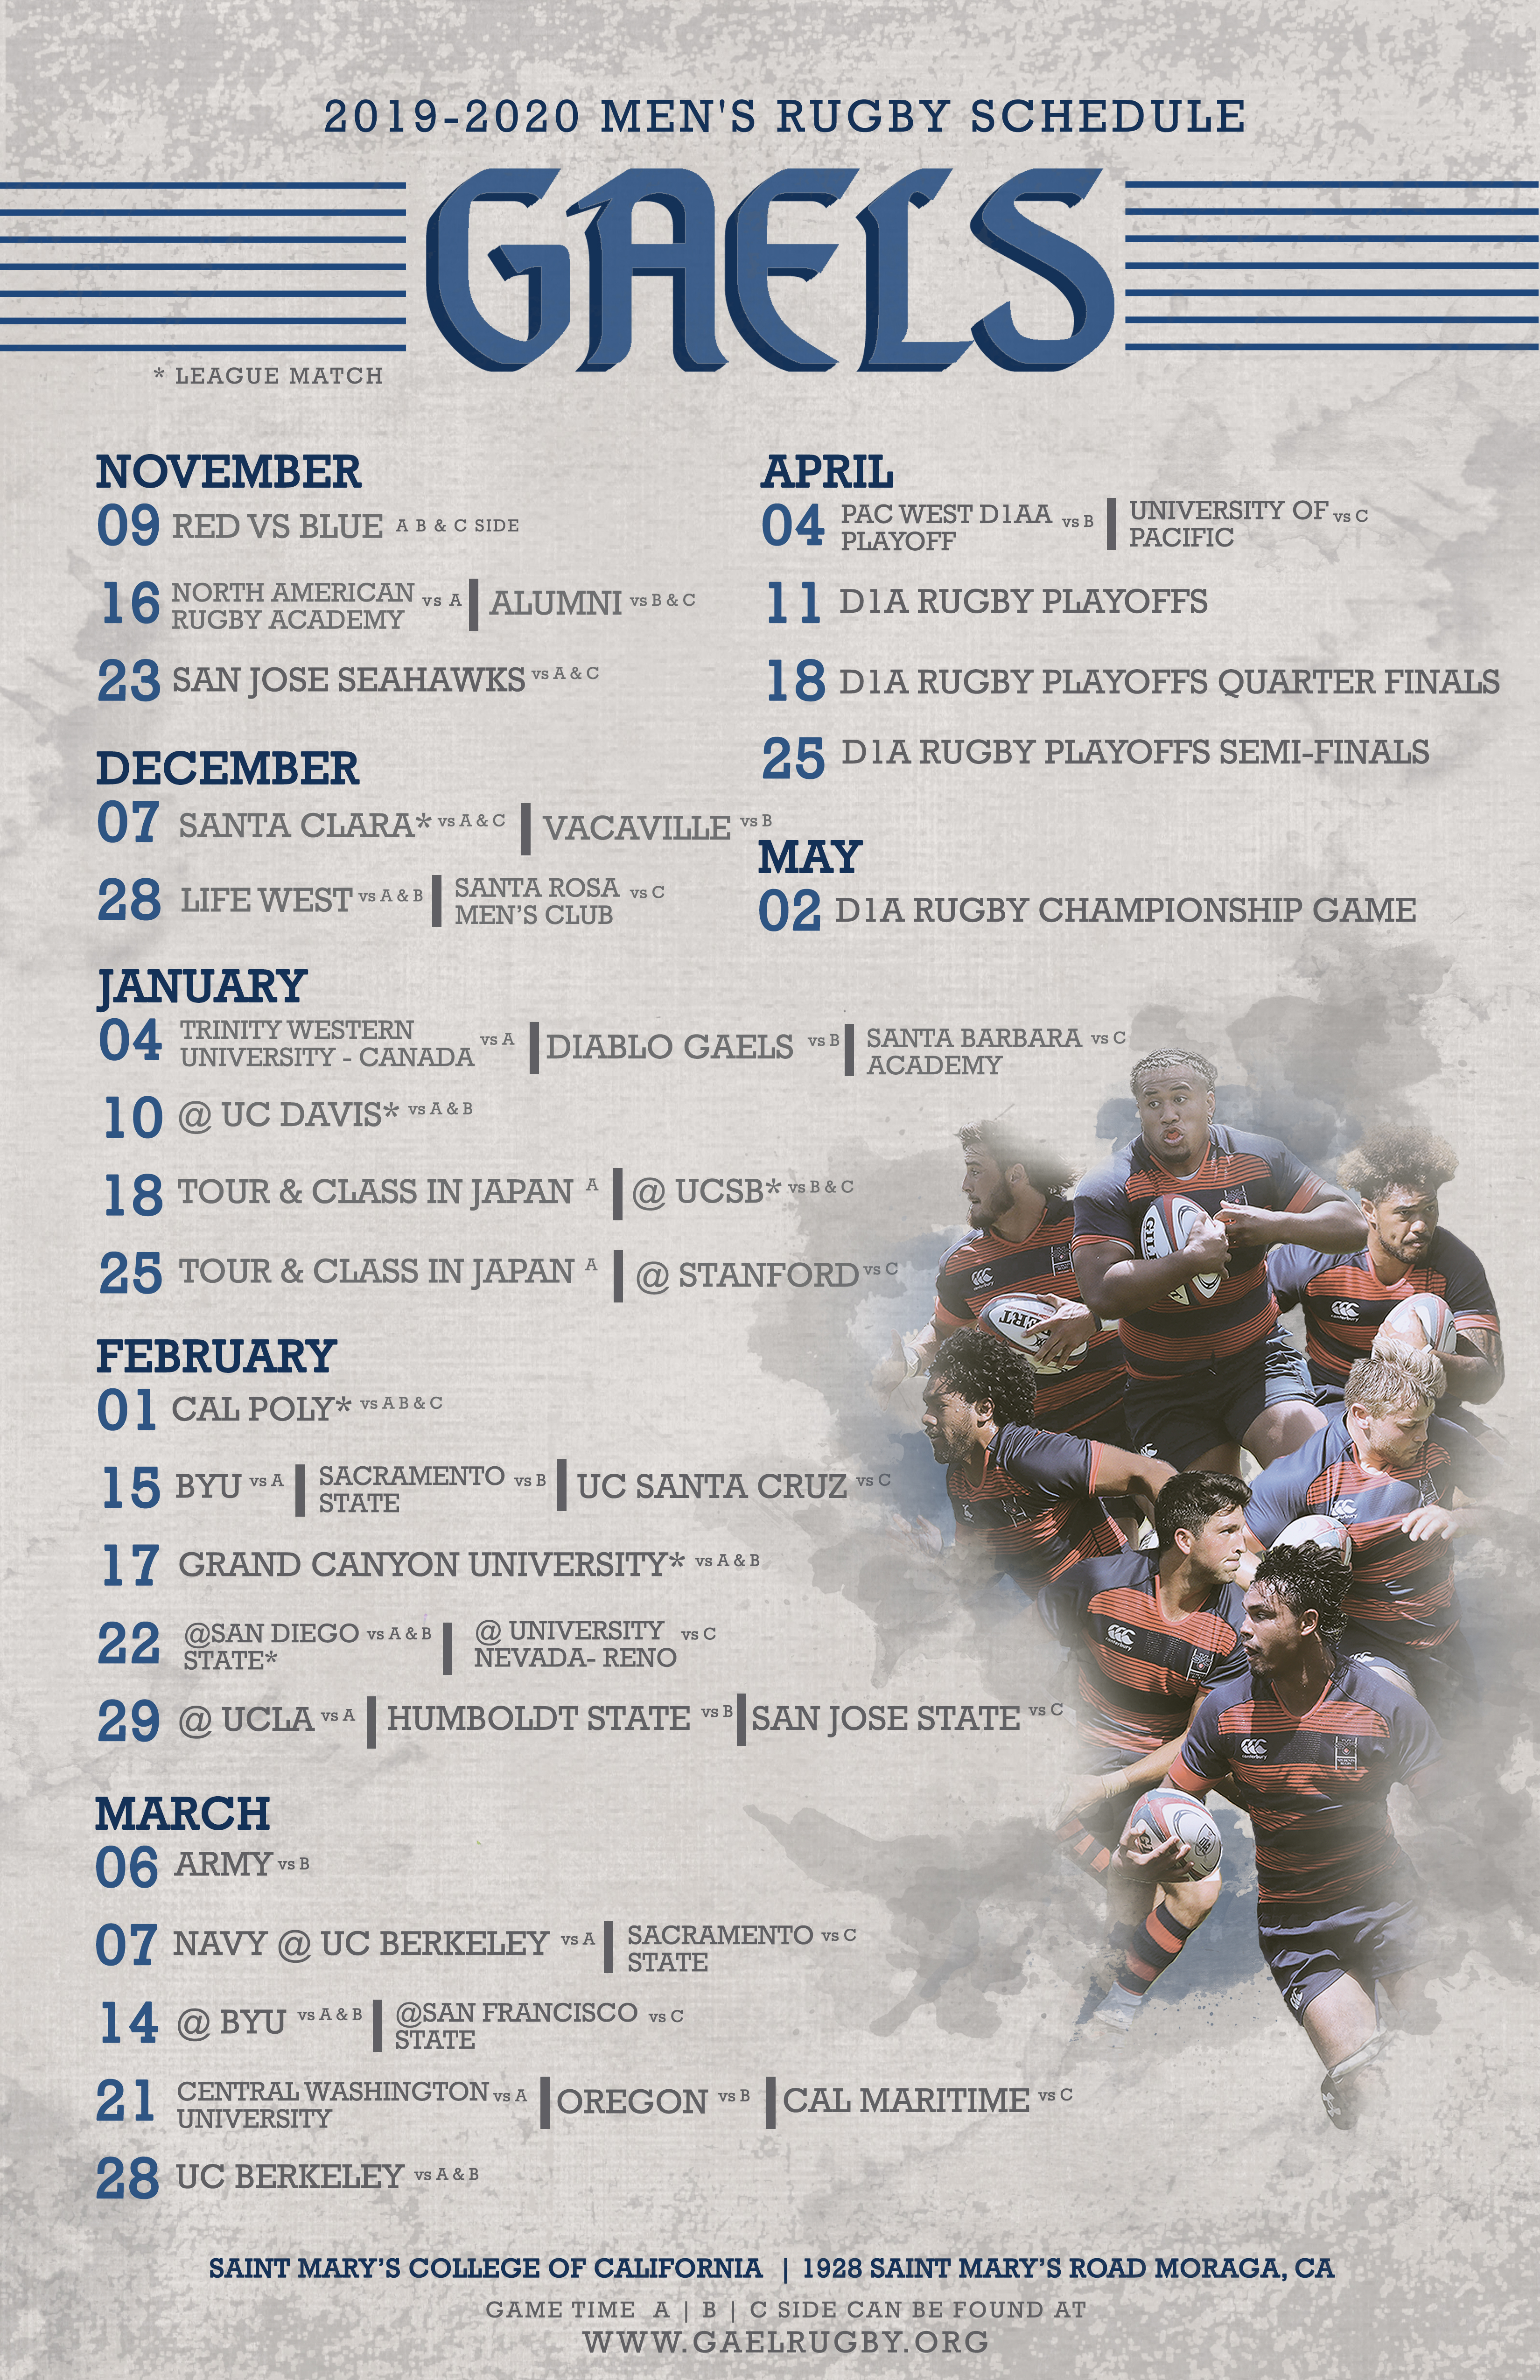 Uc Berkeley Fall 2020 Final Schedule.2019 2020 Rugby Schedule Saint Mary S College